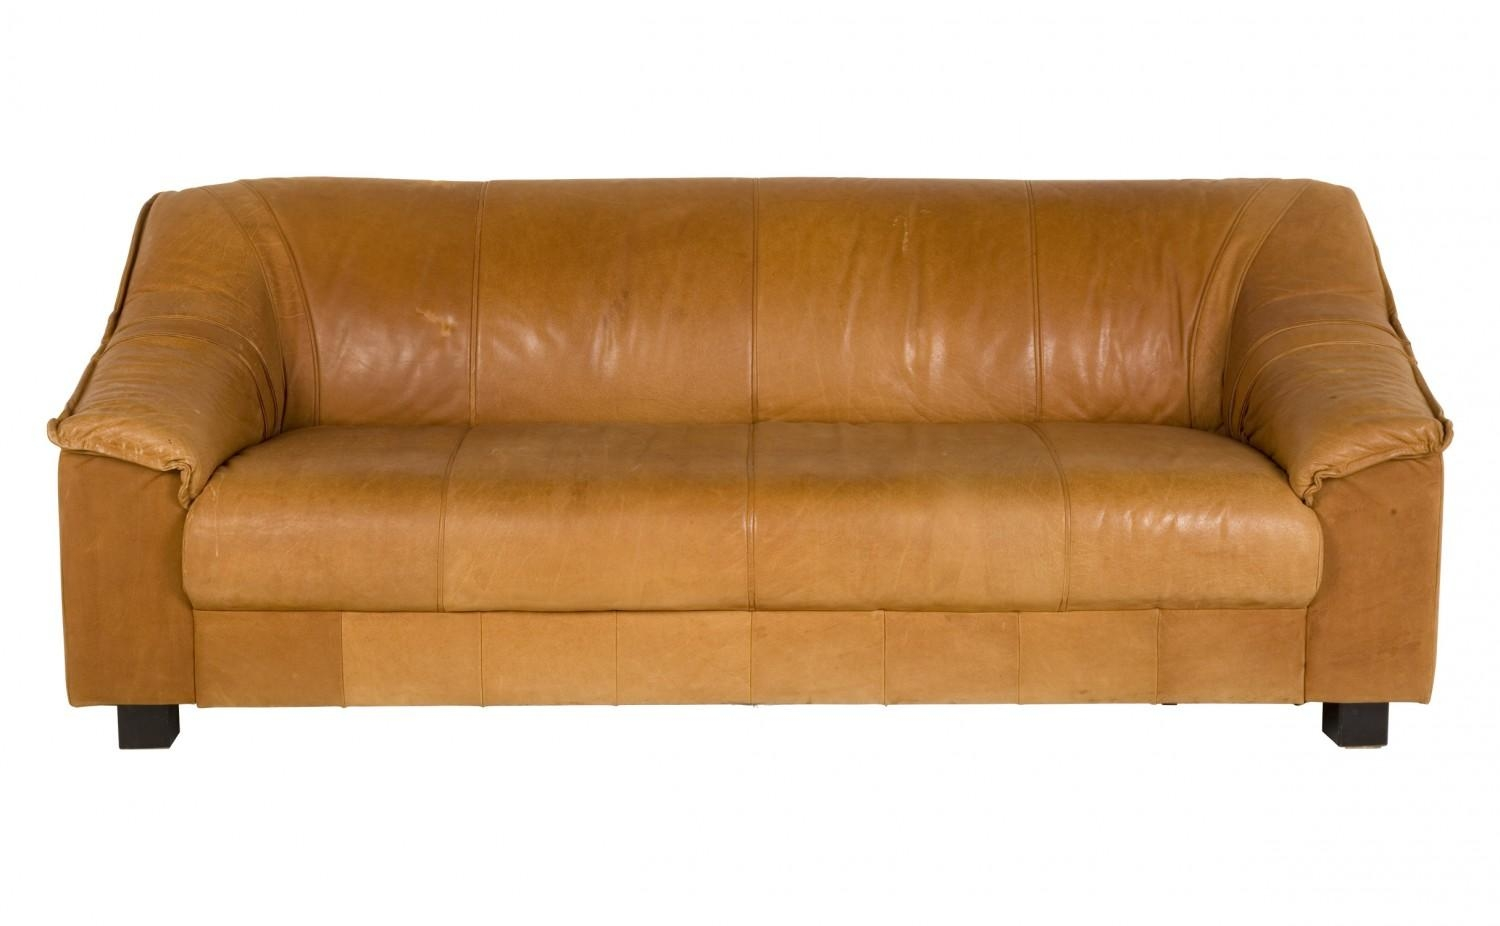 Vintage Tan Leather Sofa | Jayson Home throughout Light Tan Leather Sofas